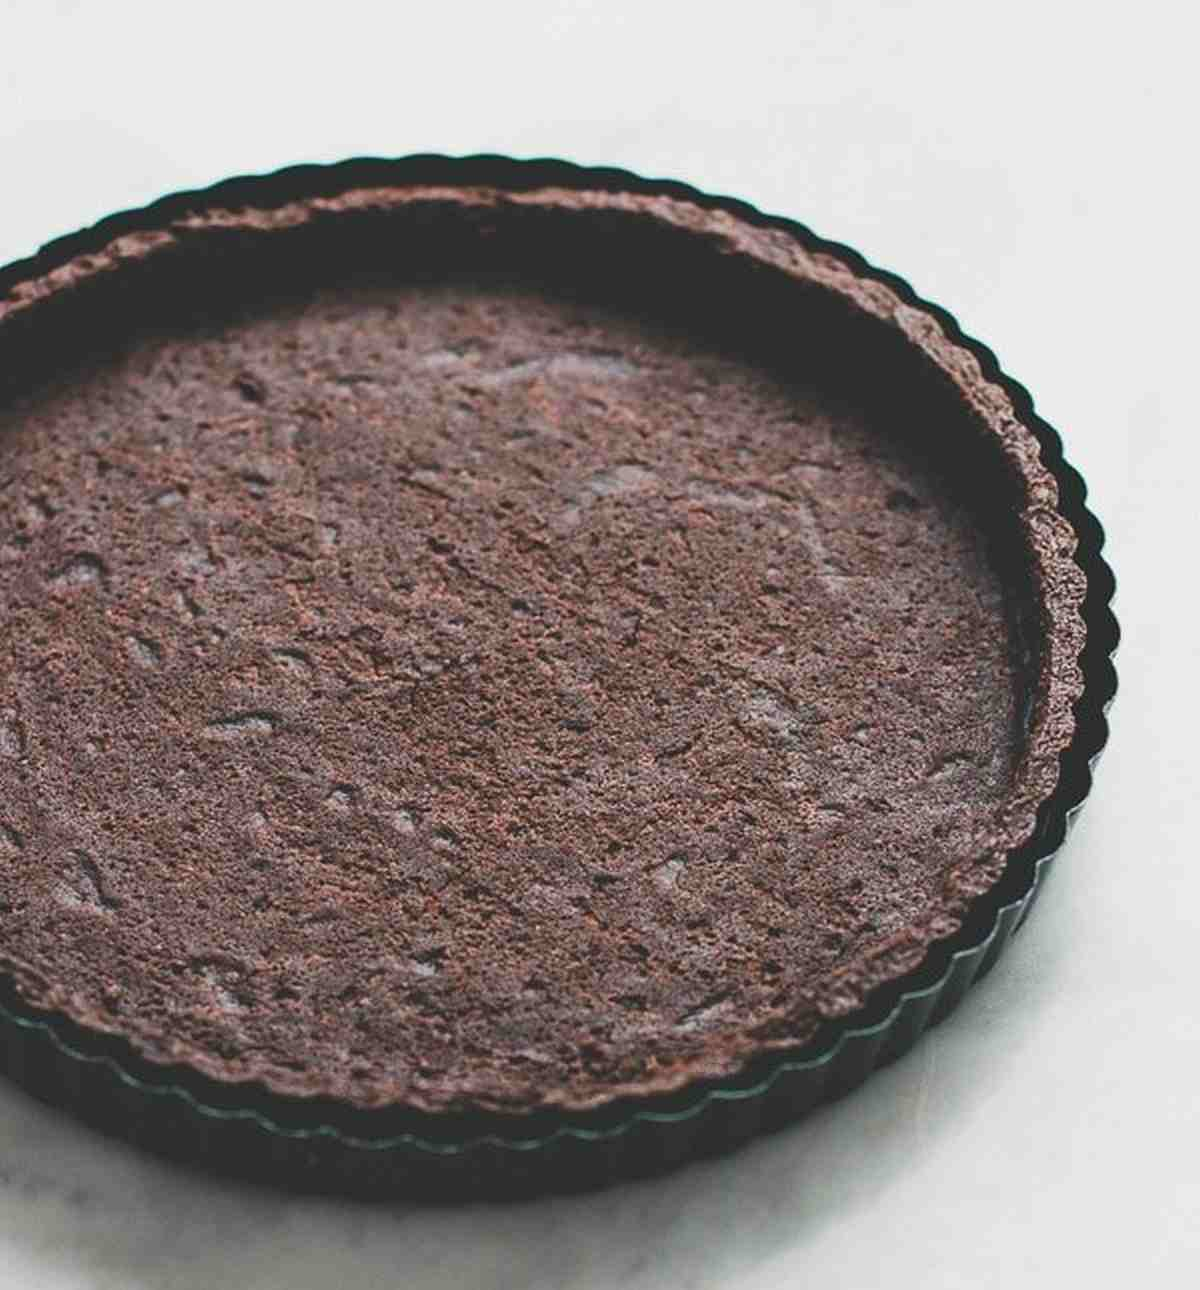 Base crostata morbida al cacao